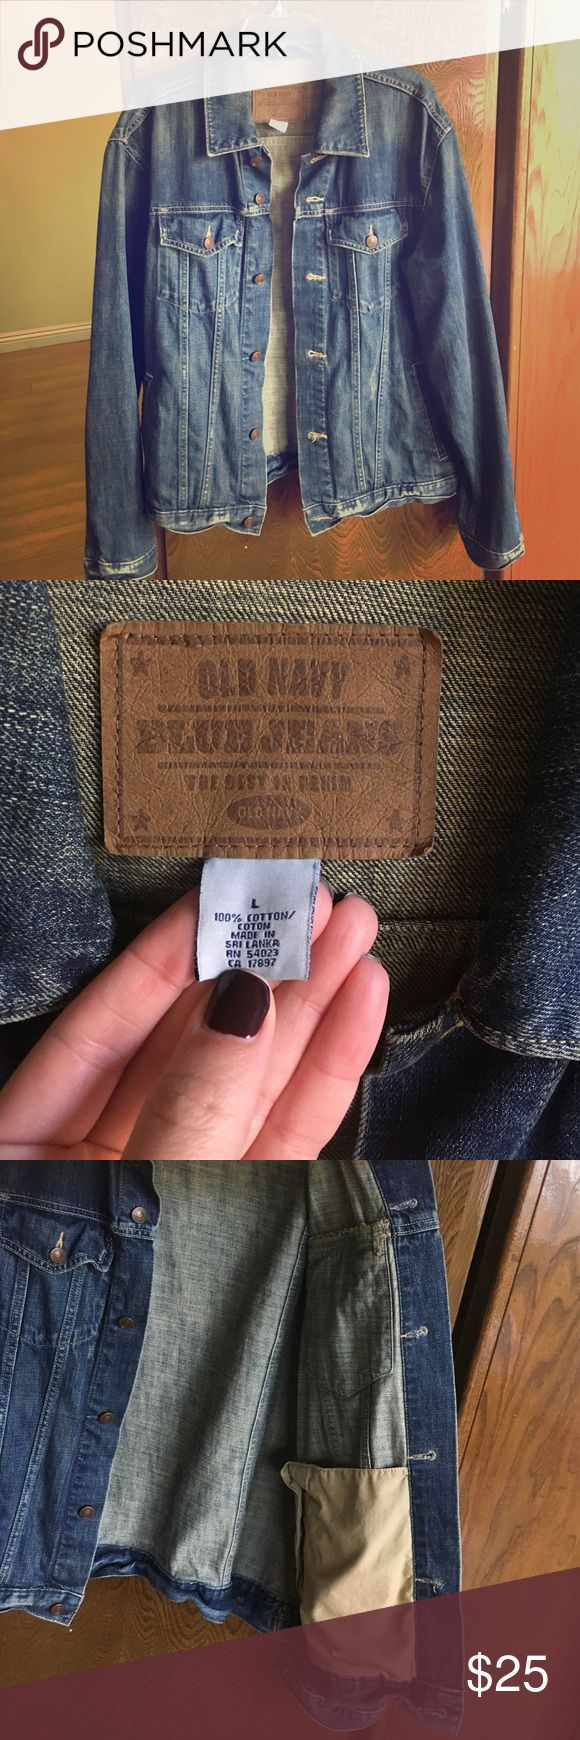 Men'S Jean Jacket! Old Navy Jean Jacket men's size large. Good condition looks great. Lemme know if you have any questions. Vintage. Old Navy Jackets & Coats Jean Jackets